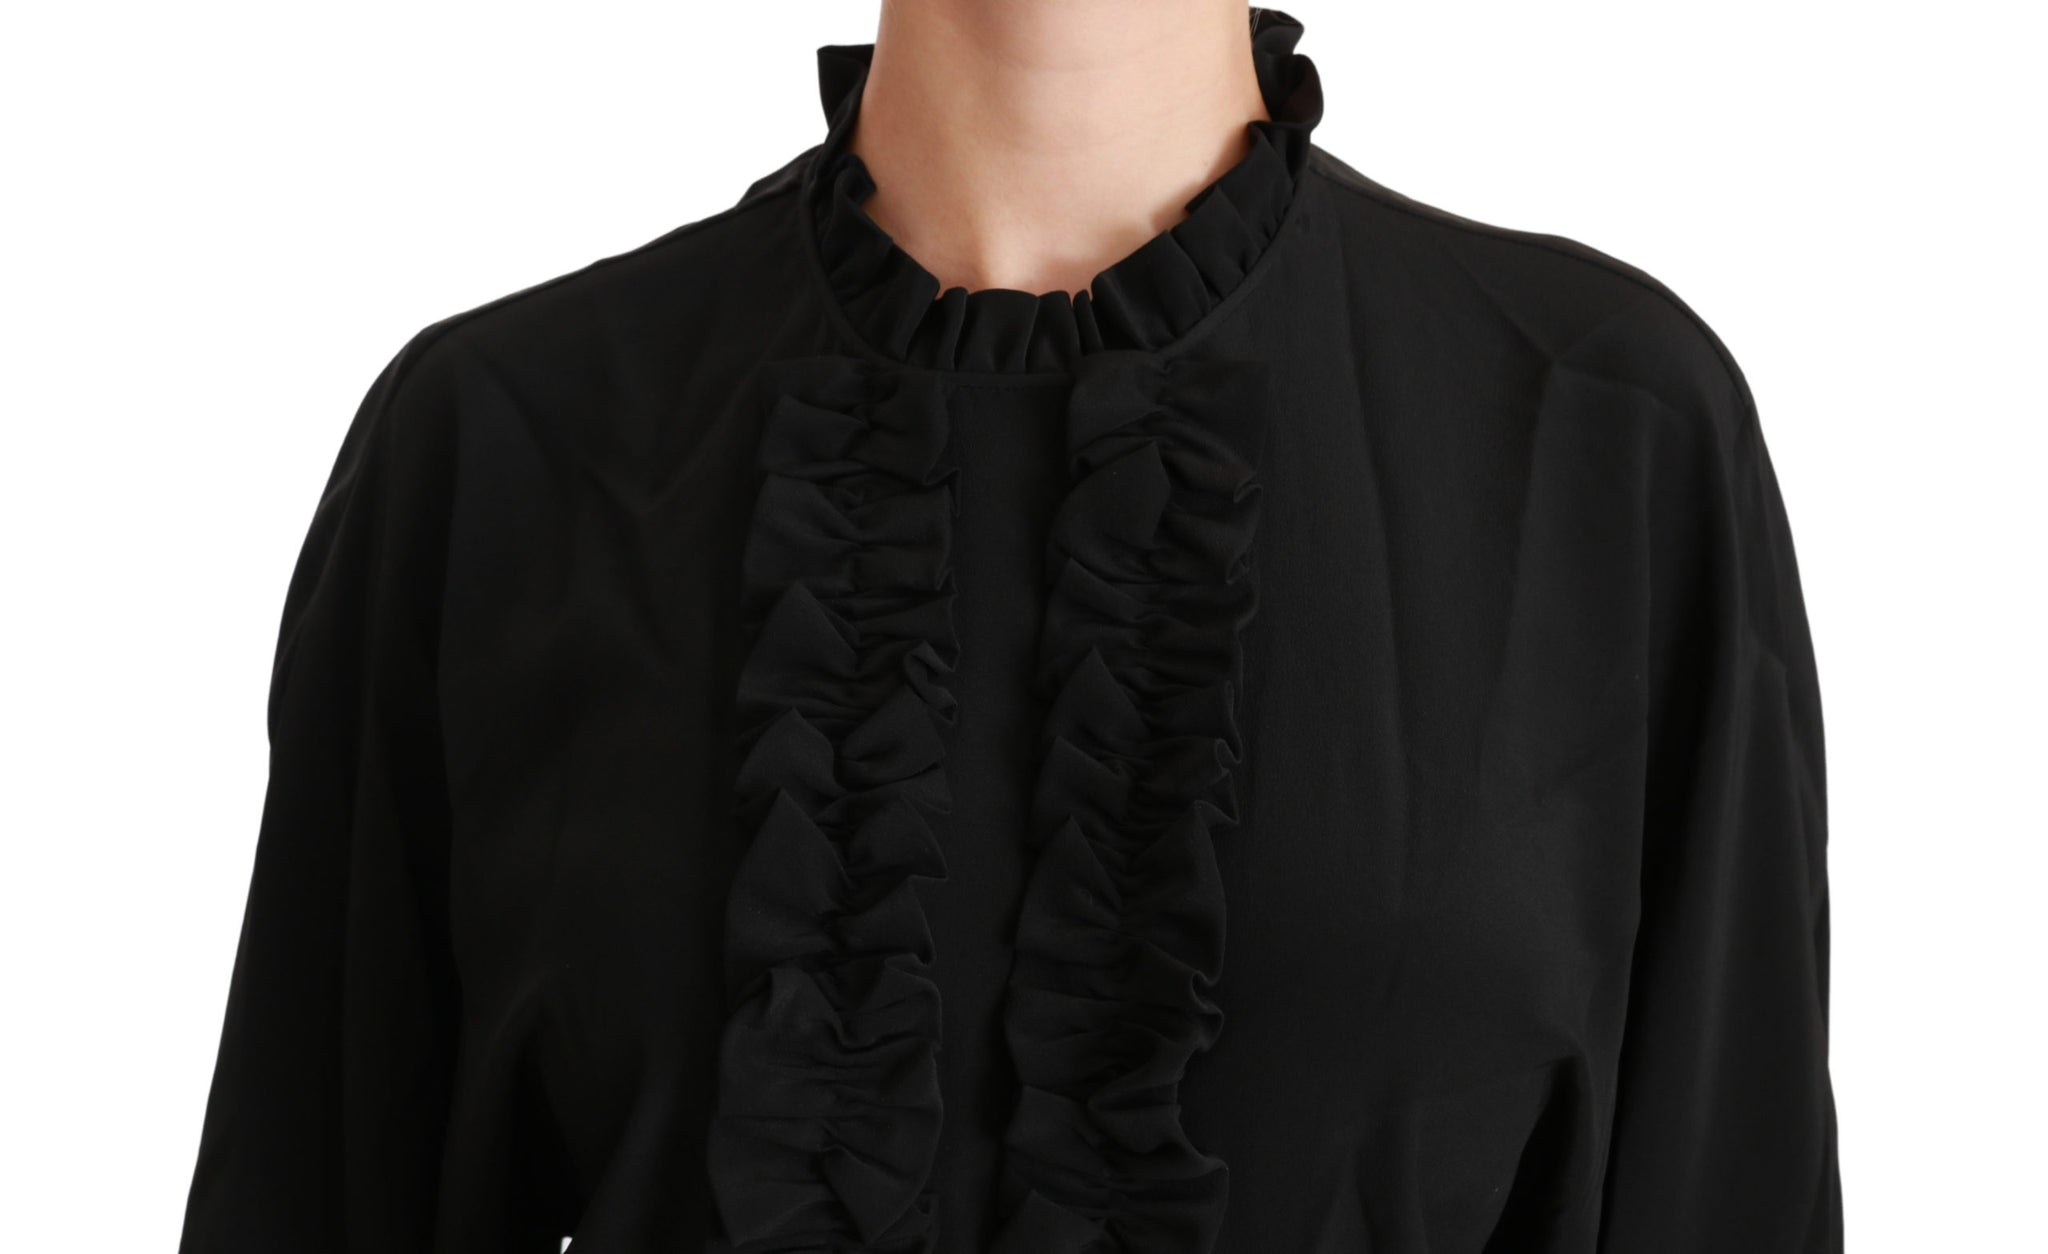 Black Silk Shirt Ruffled Top Blouse